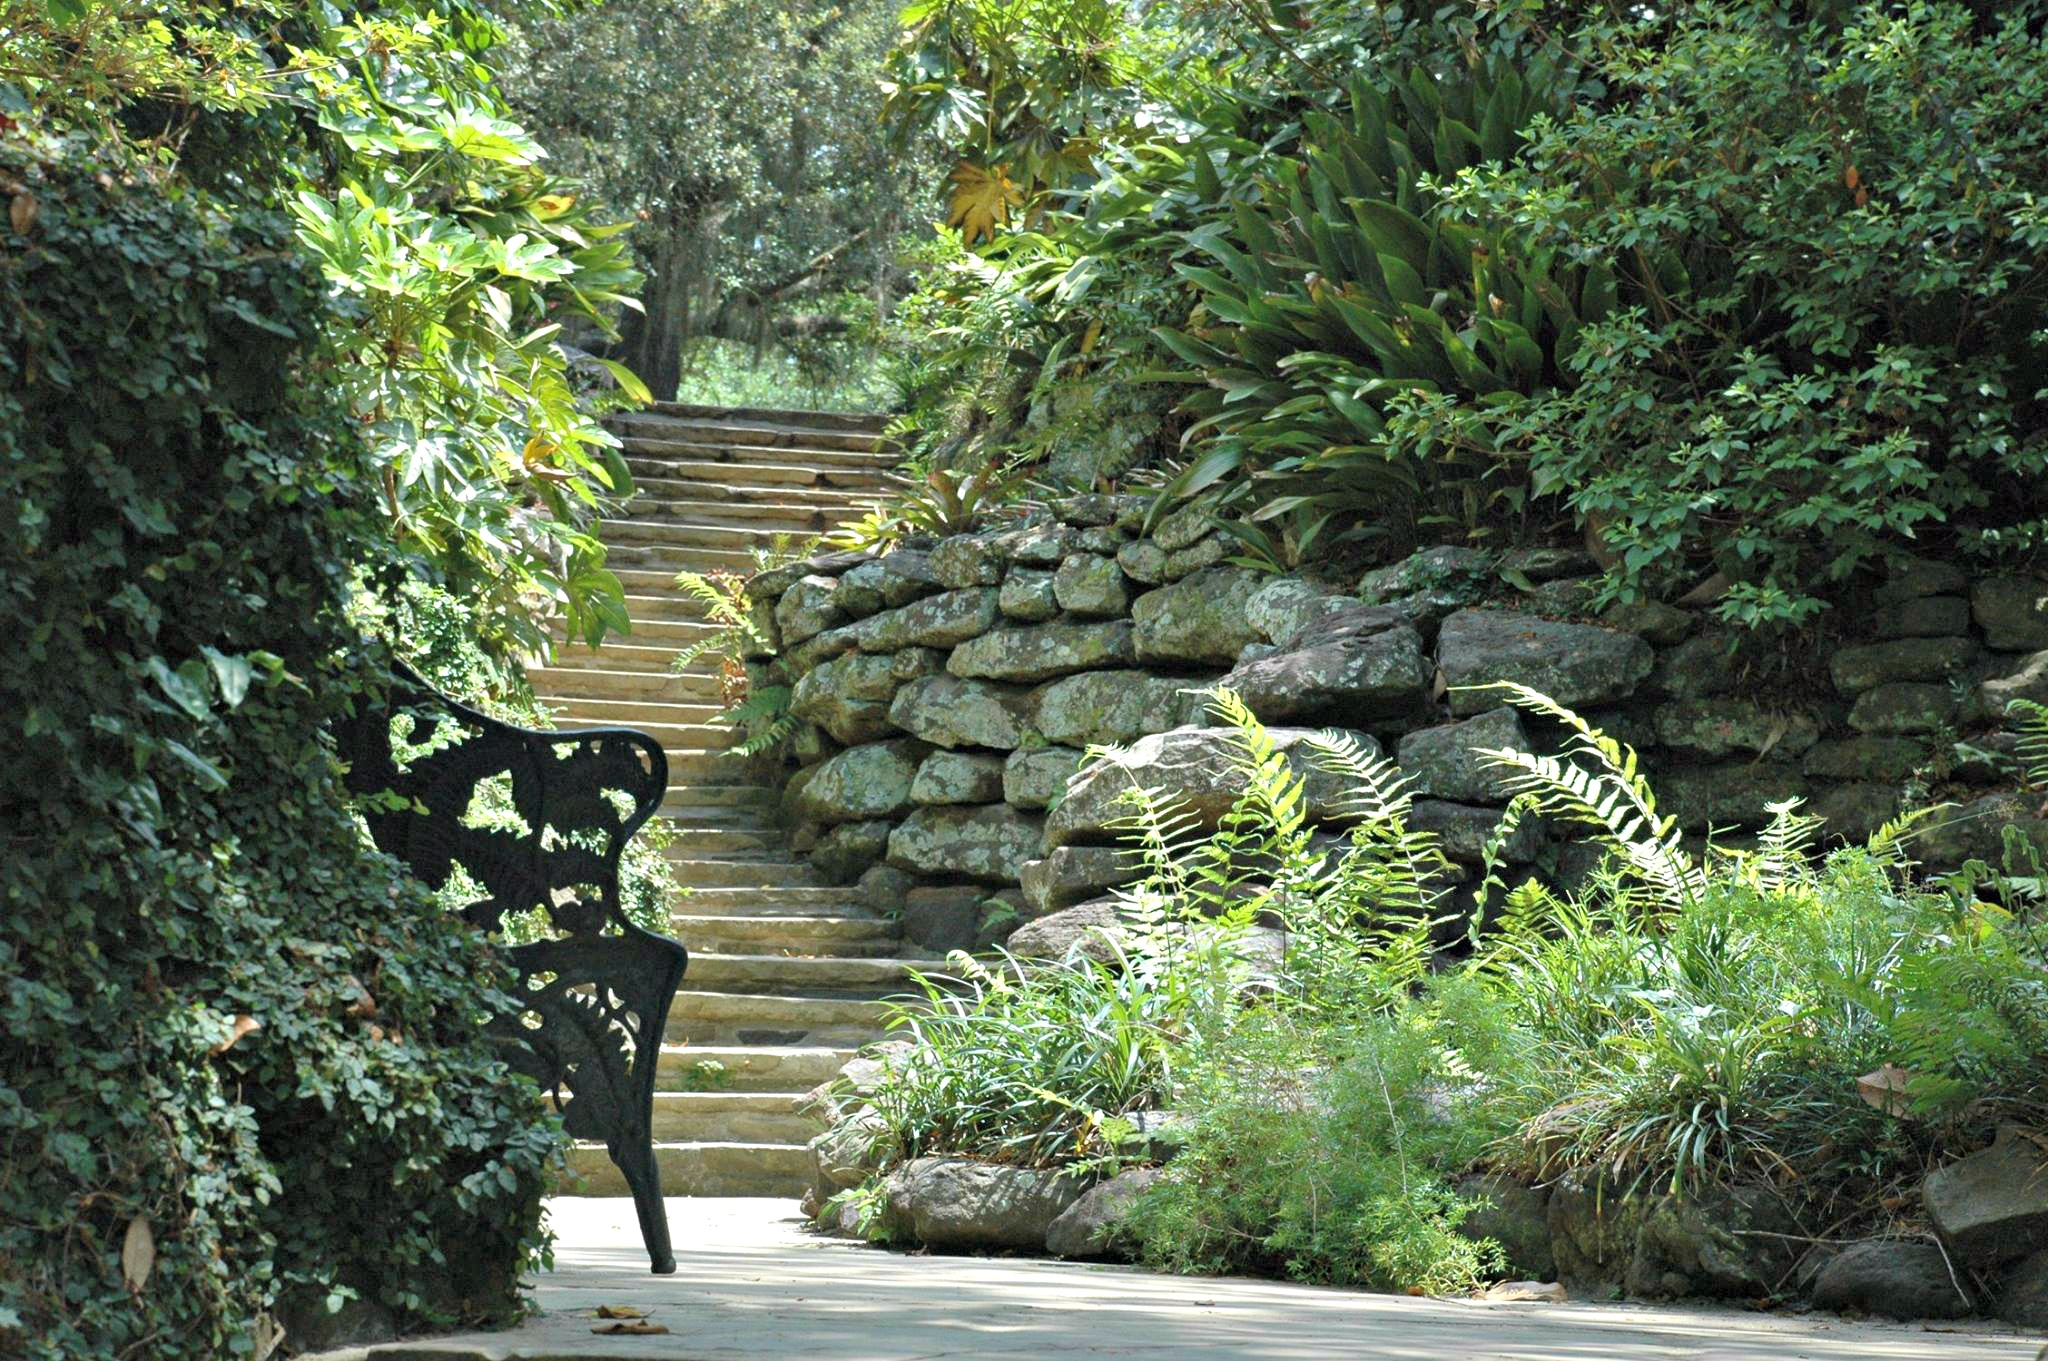 Ferns and other lush greenery flank a stairway at Bellingrath Gardens and Home, one of ten easy day trips from Gulf Shores